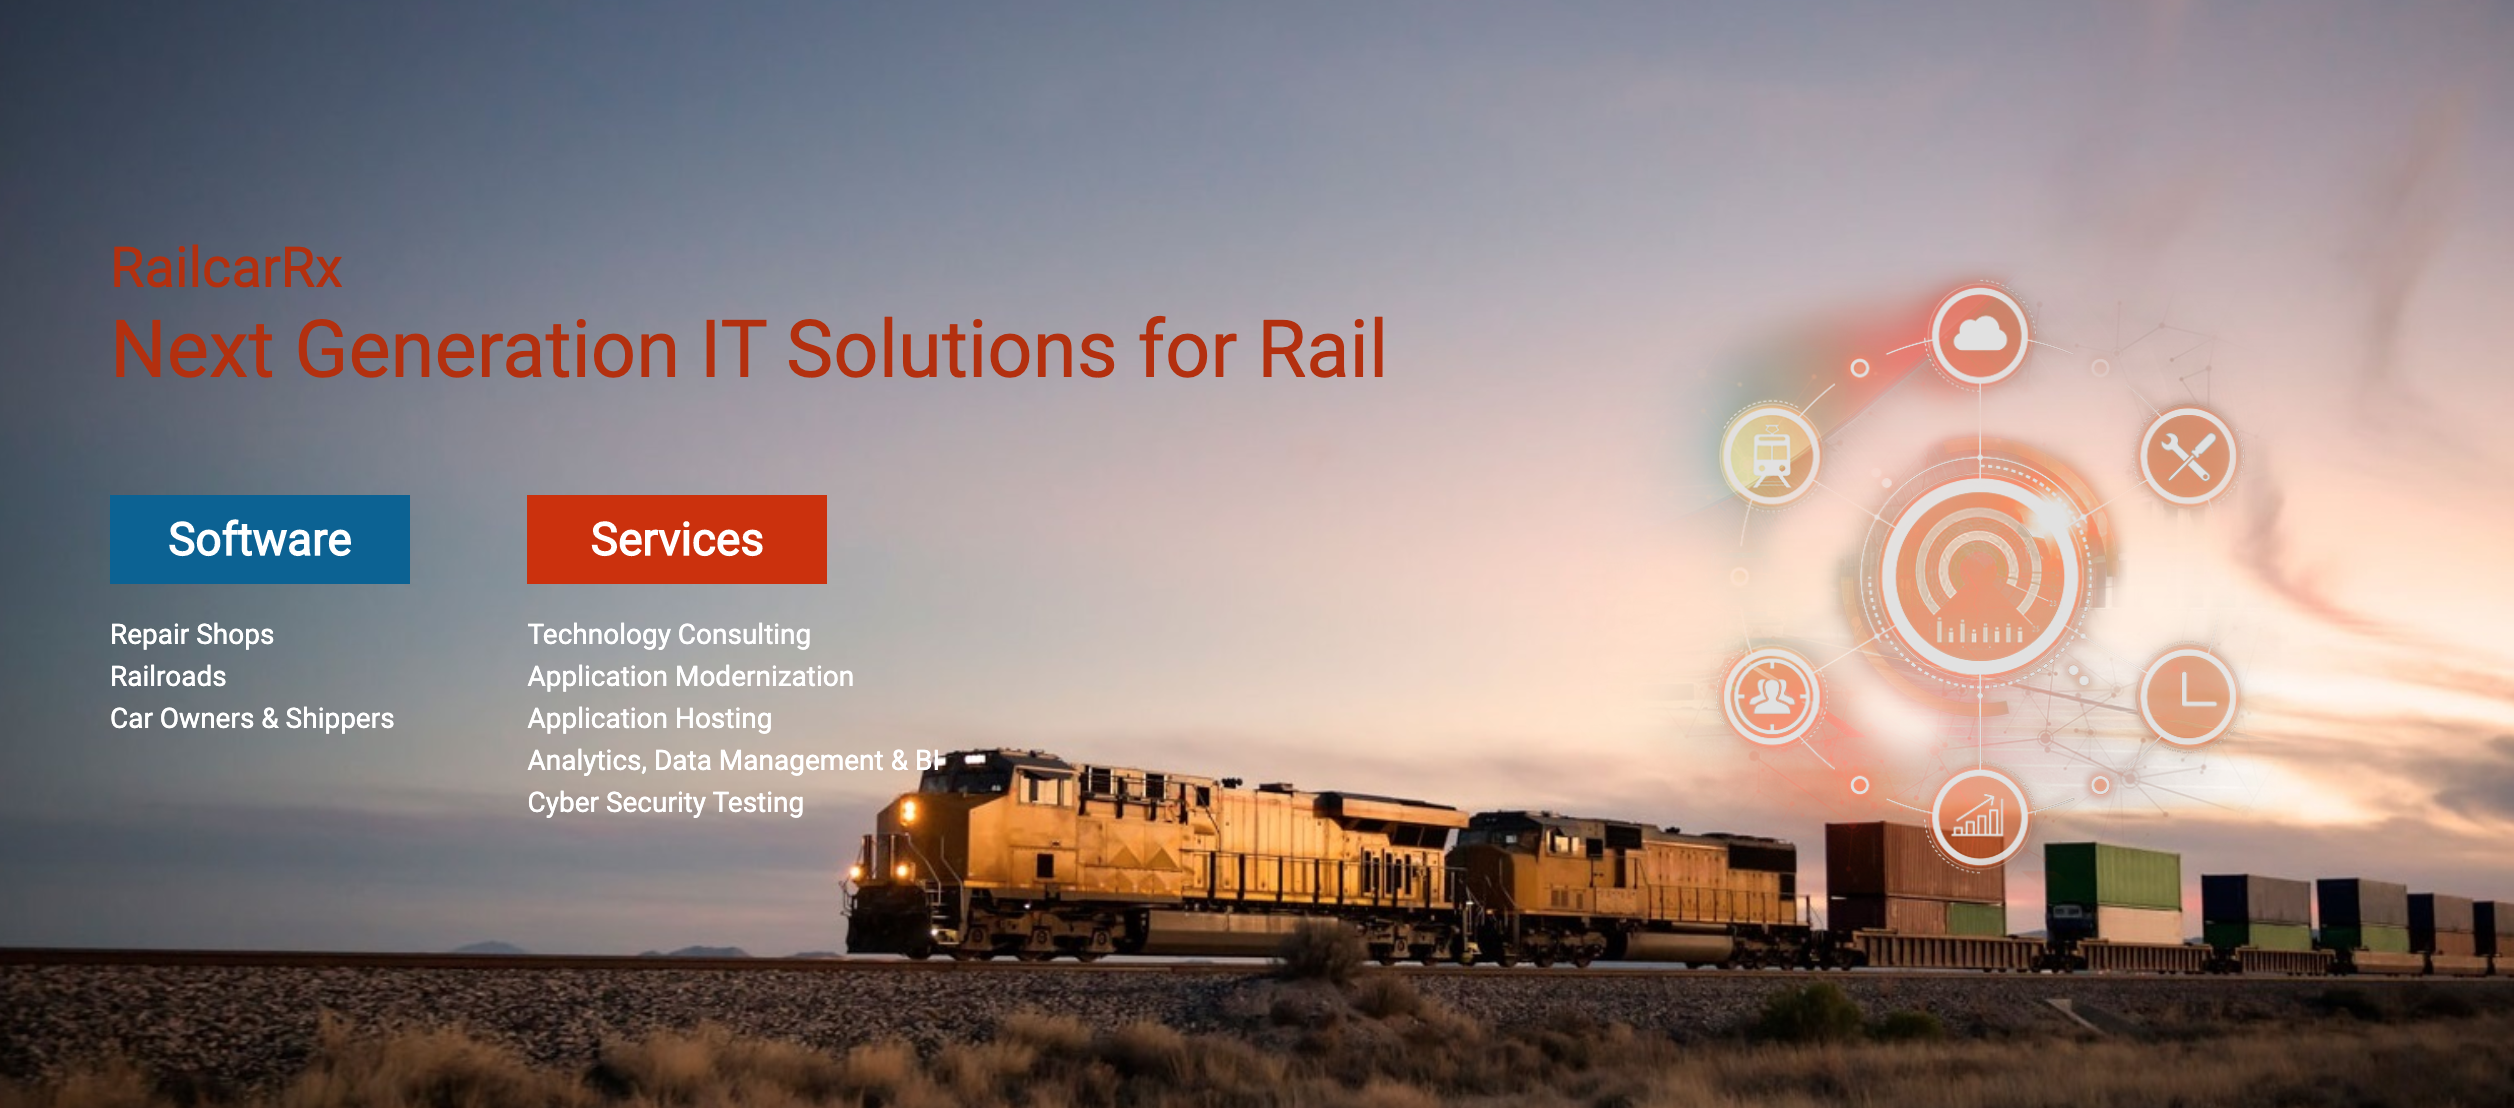 PINC Acquires RailcarRx